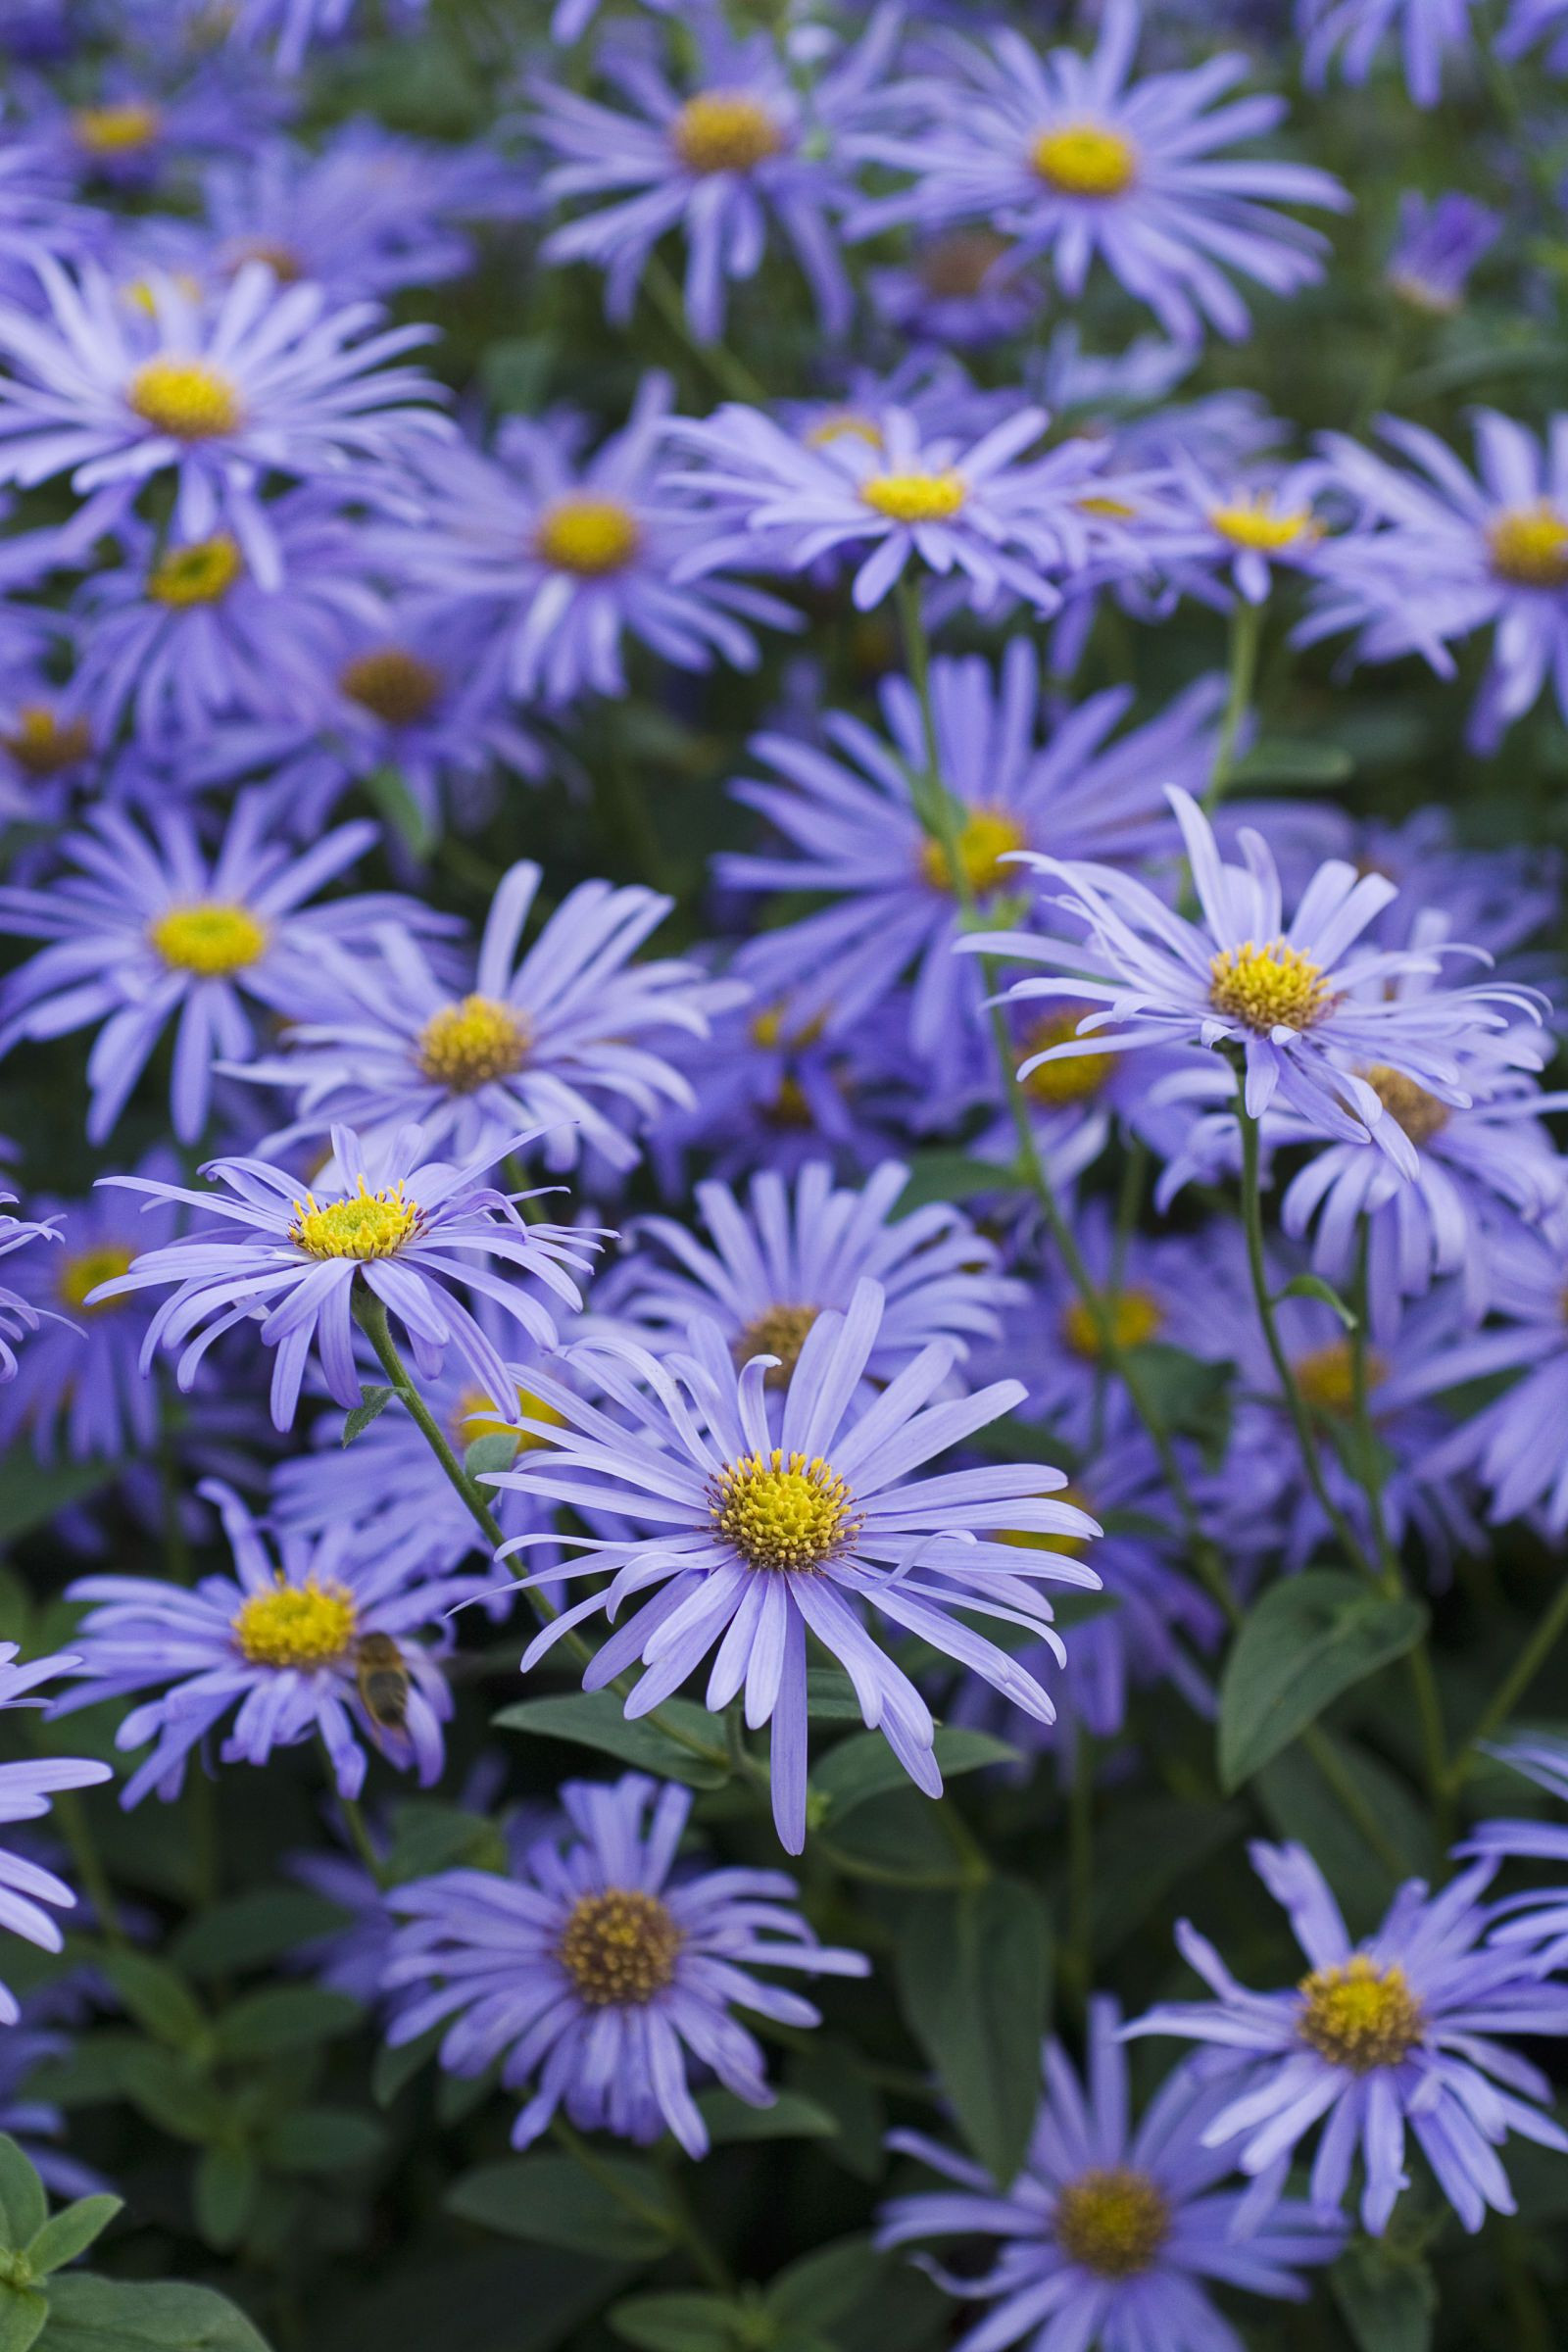 Asters As September s birth flower asters represent love and patience The star like blooms add splashes of purple pink and violet toward the end of